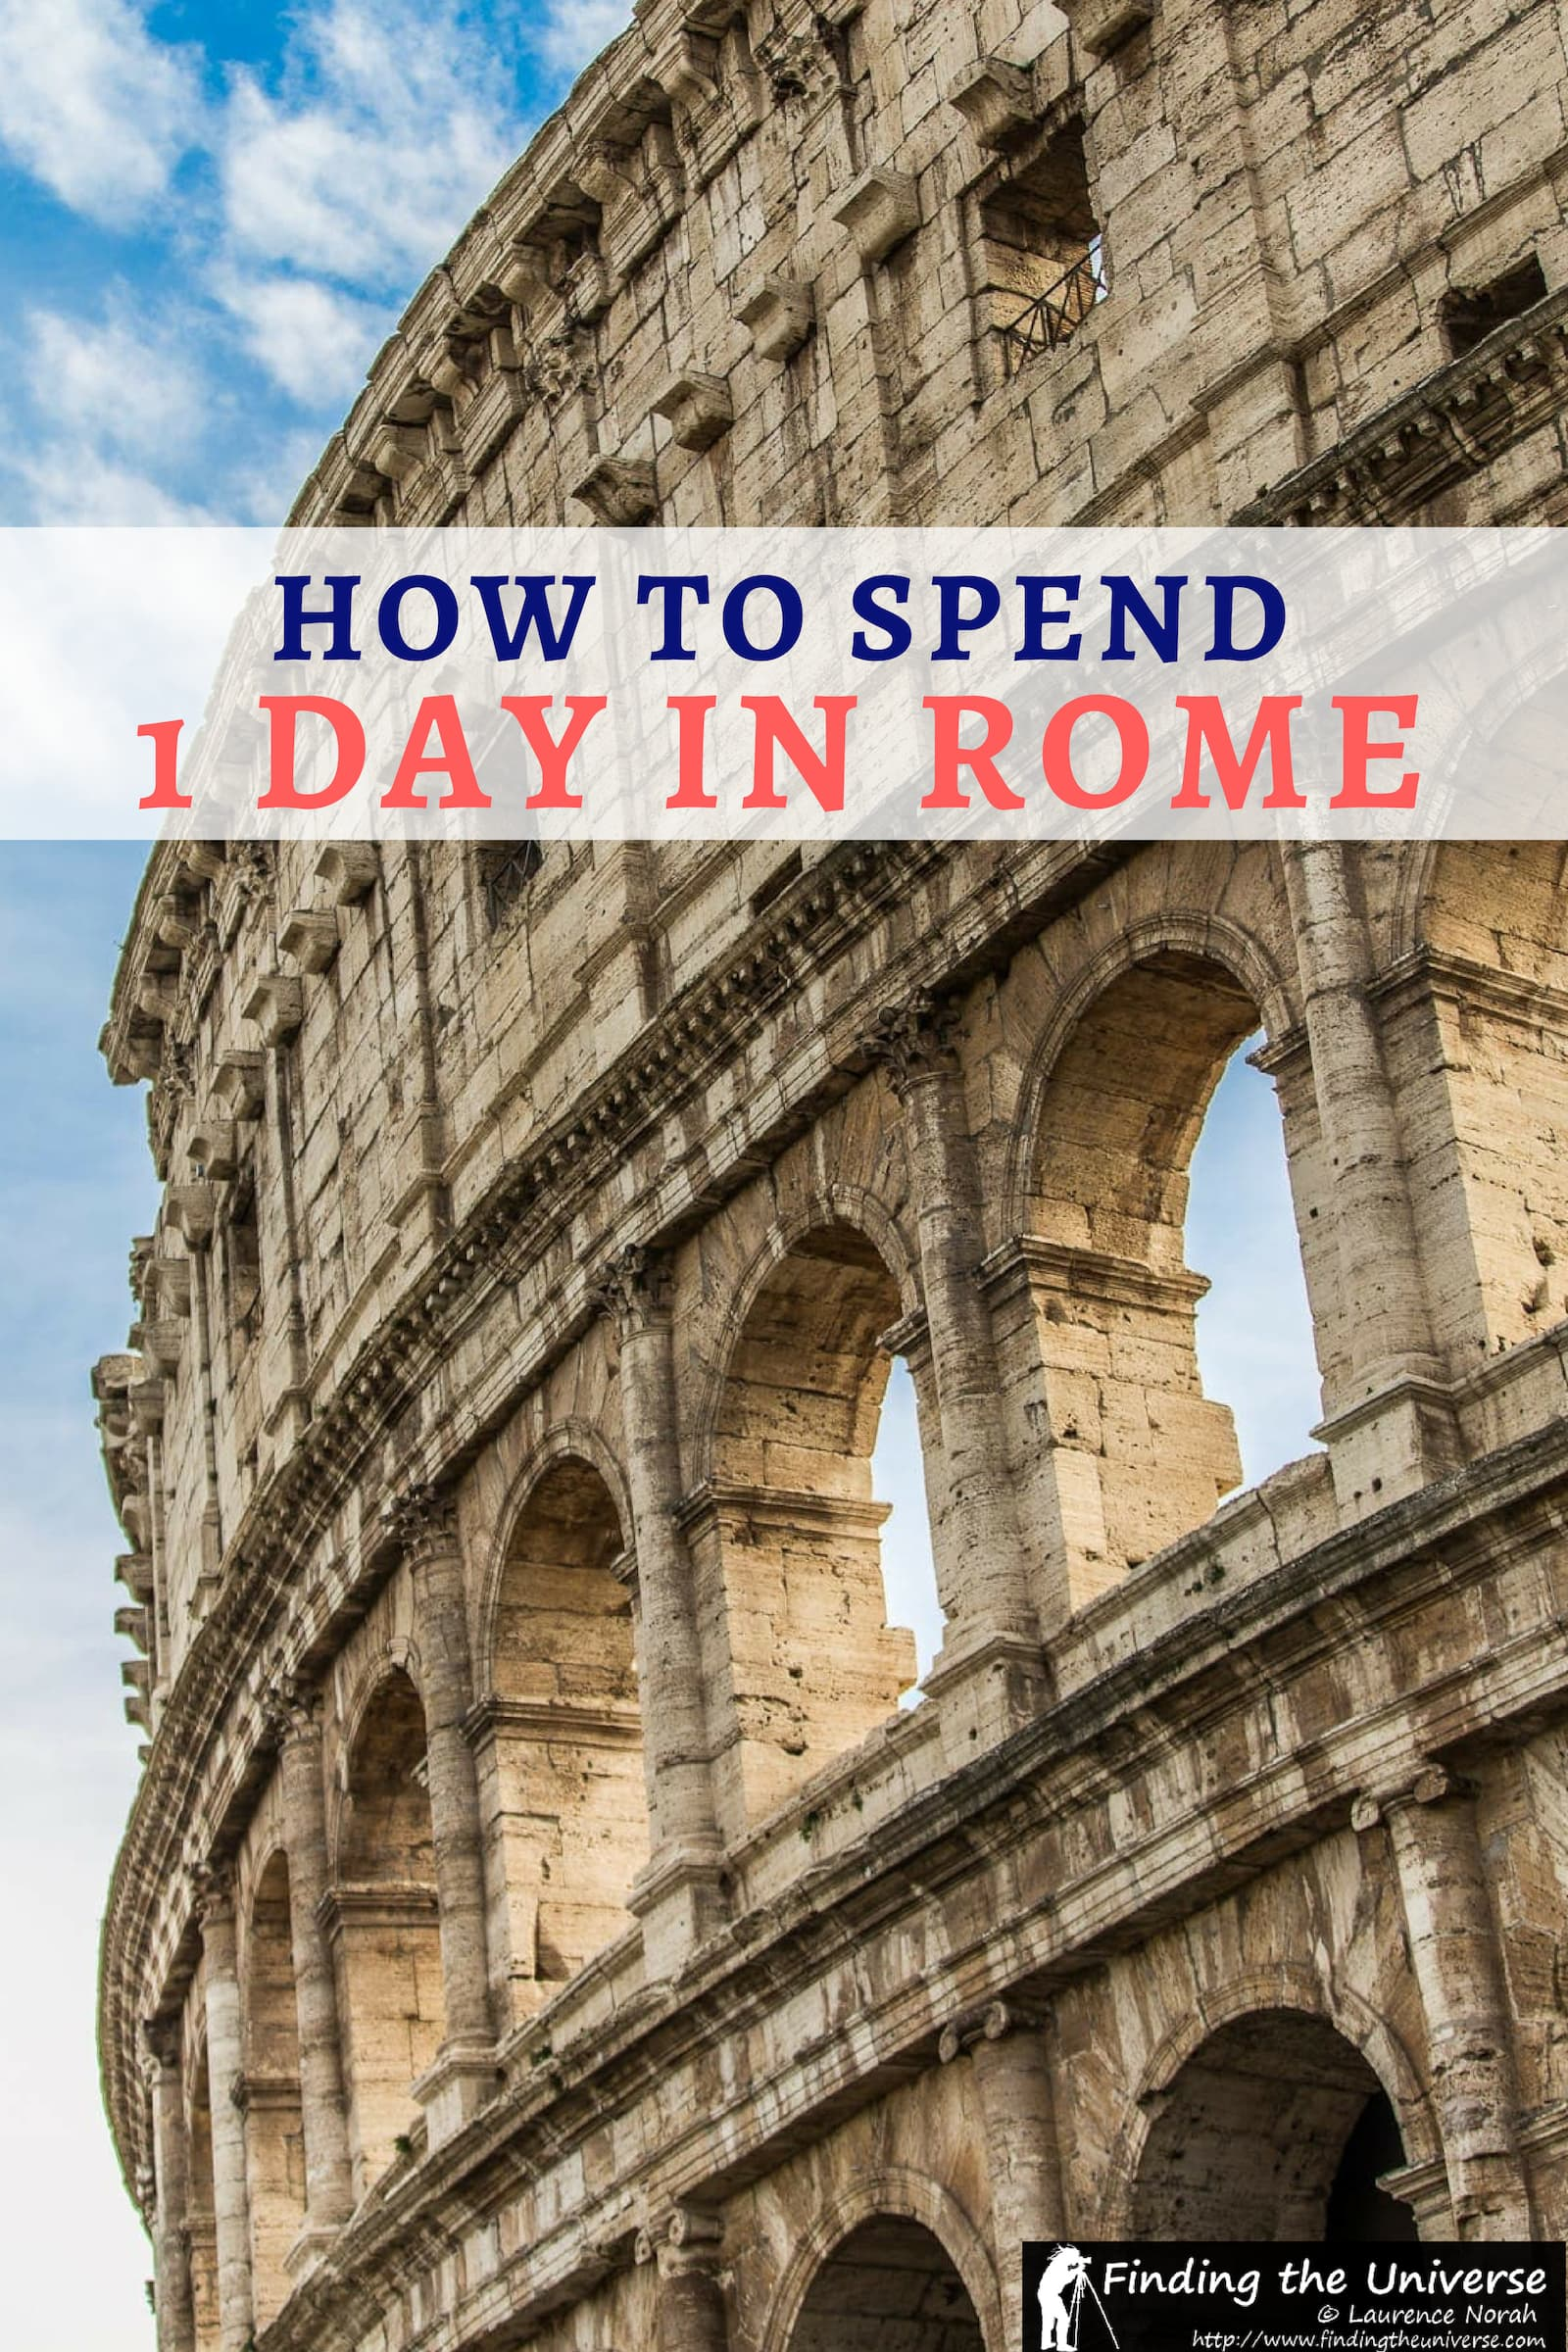 A detailed guide to spending a day in Rome, including a step by step itinerary, tips on getting around, suggested tours, and money saving tips!